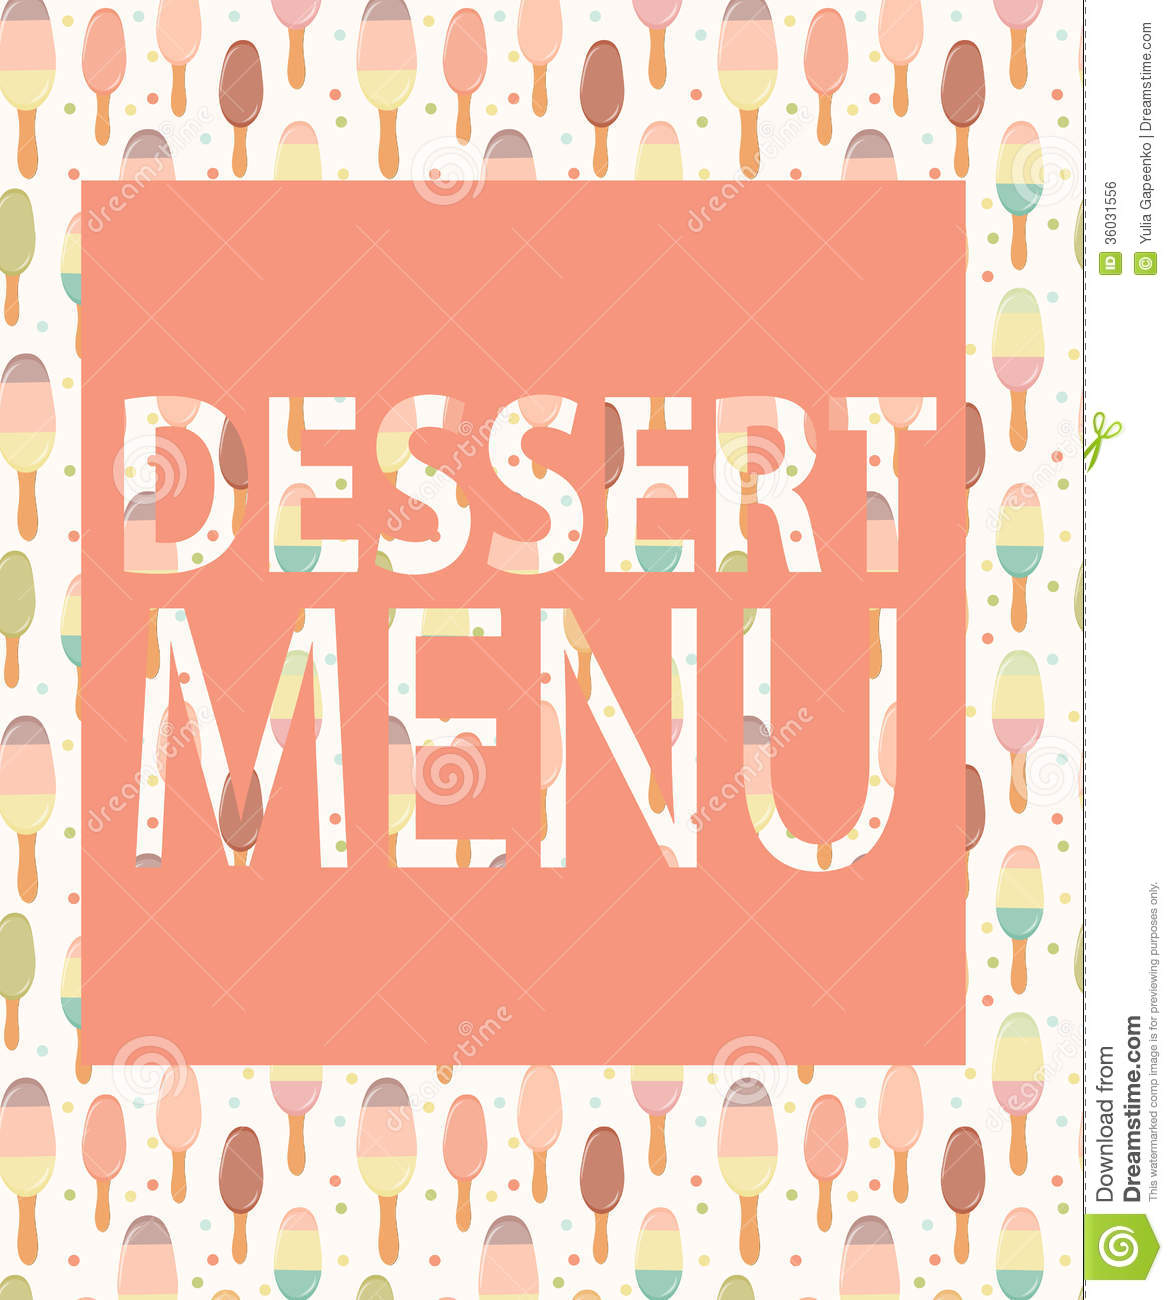 Dessert Menu Template. Vector Illustration Royalty Free Stock ...